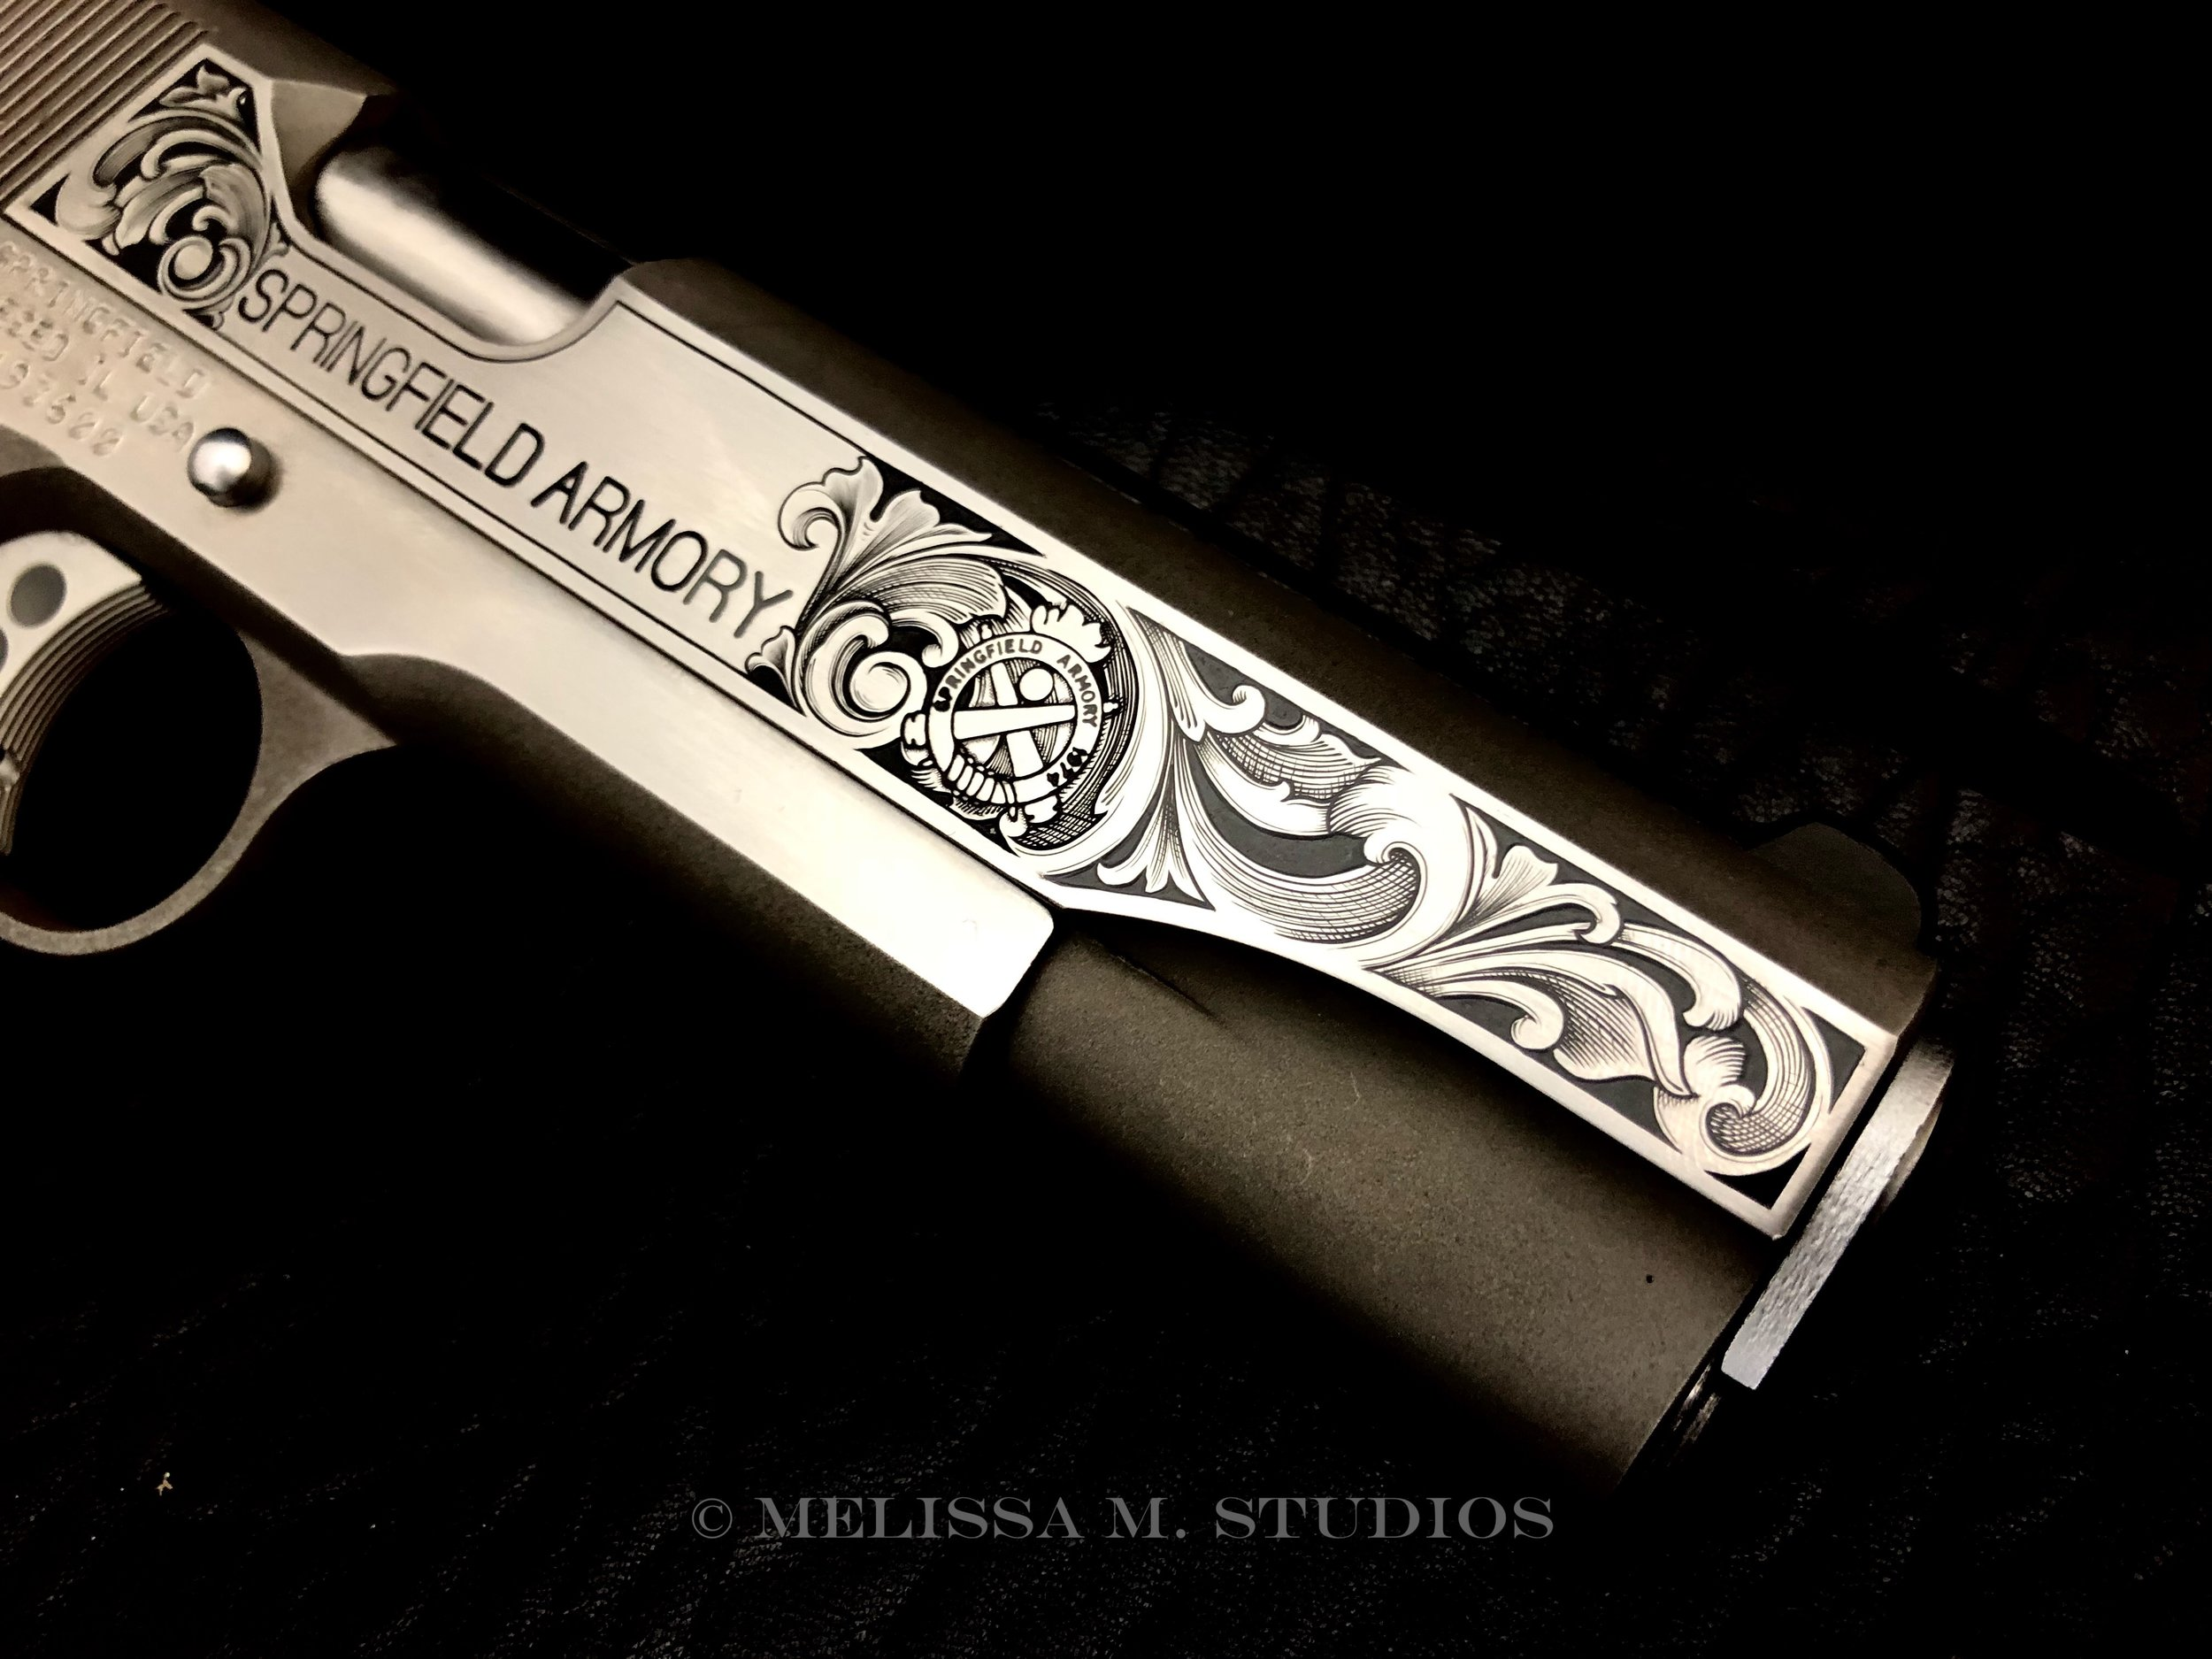 Hand Engraved 1911 Slide